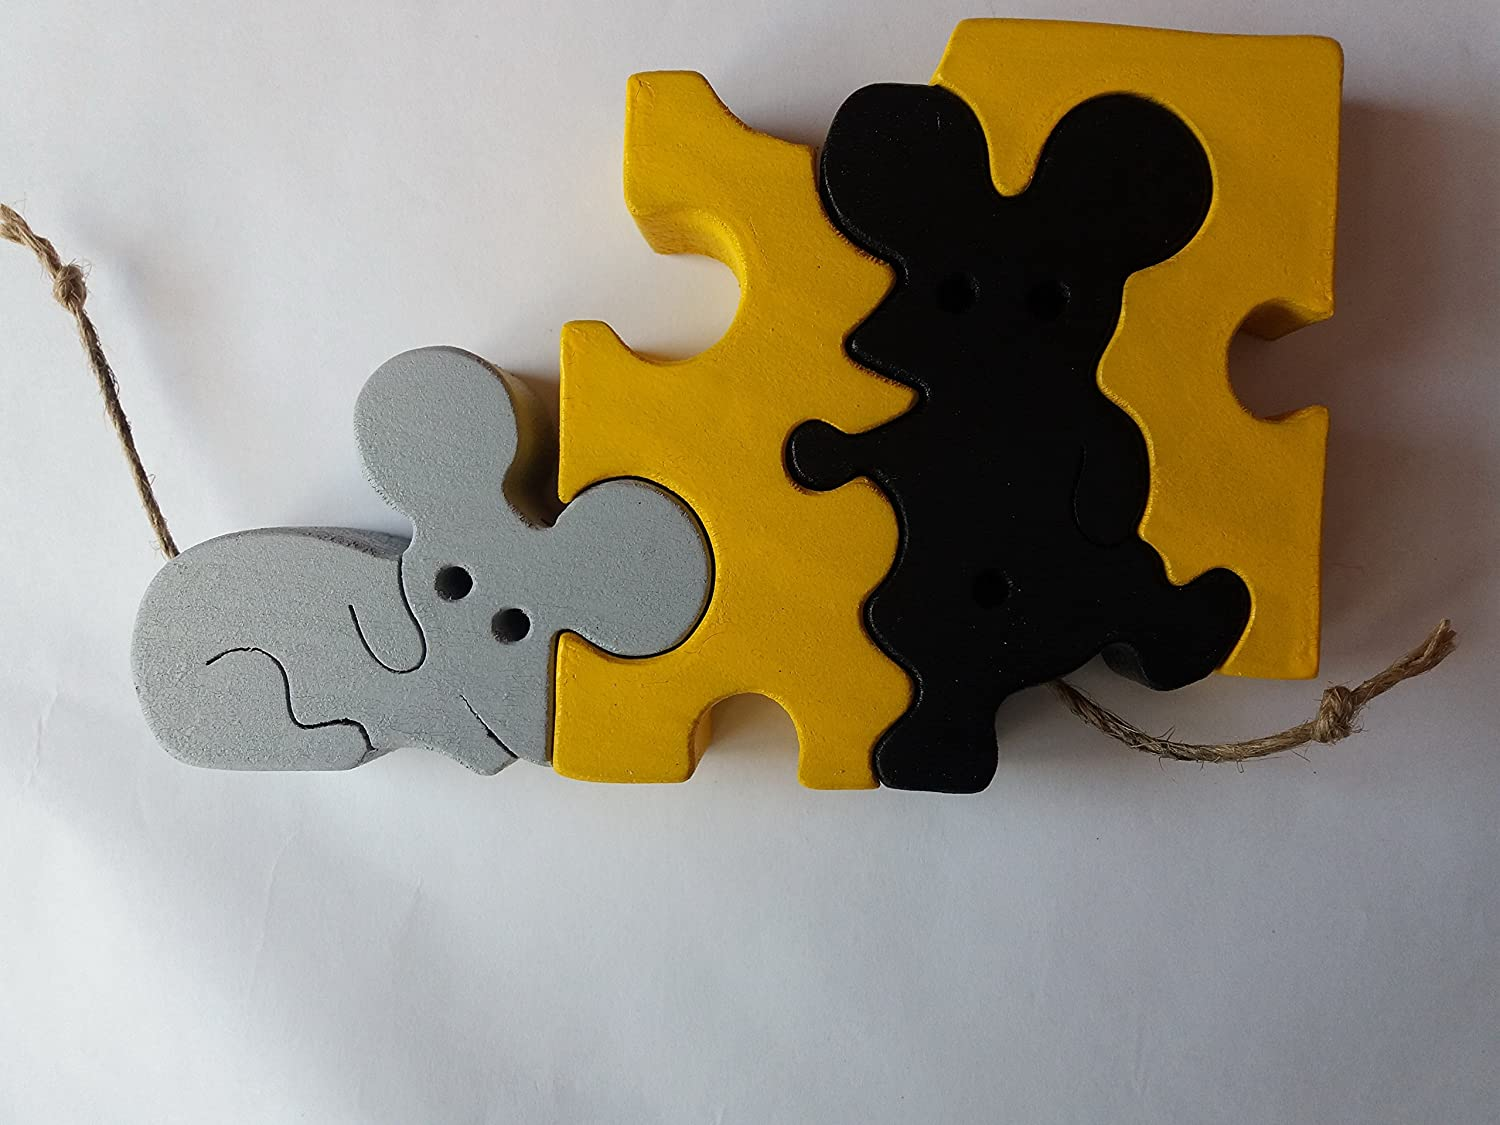 Wooden puzzle mice mouse in cheese handmade animal toy gift for children massive beech wood toy